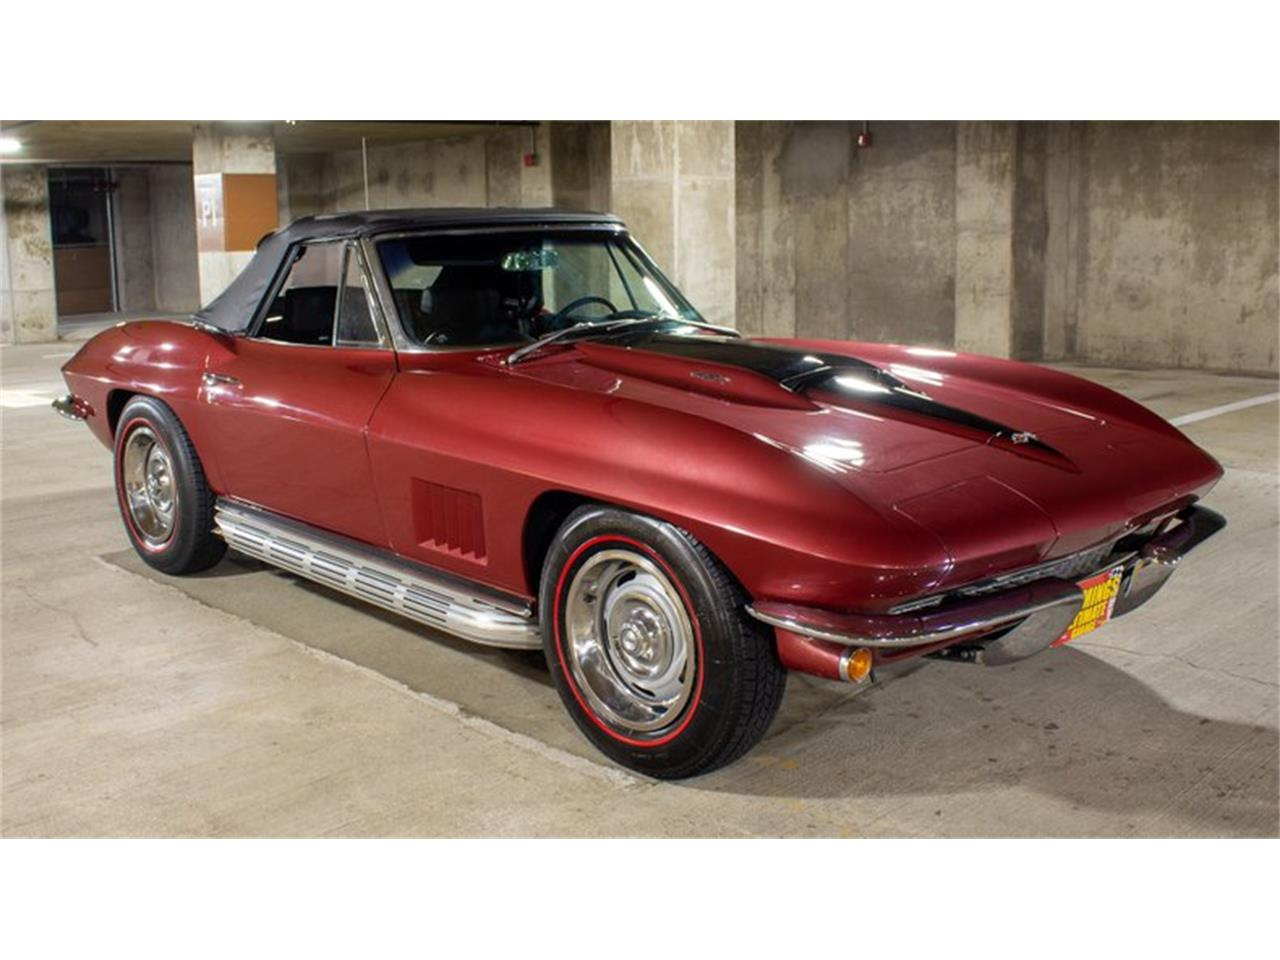 Large Picture of 1967 Chevrolet Corvette located in Rockville Maryland - $129,990.00 - QETF